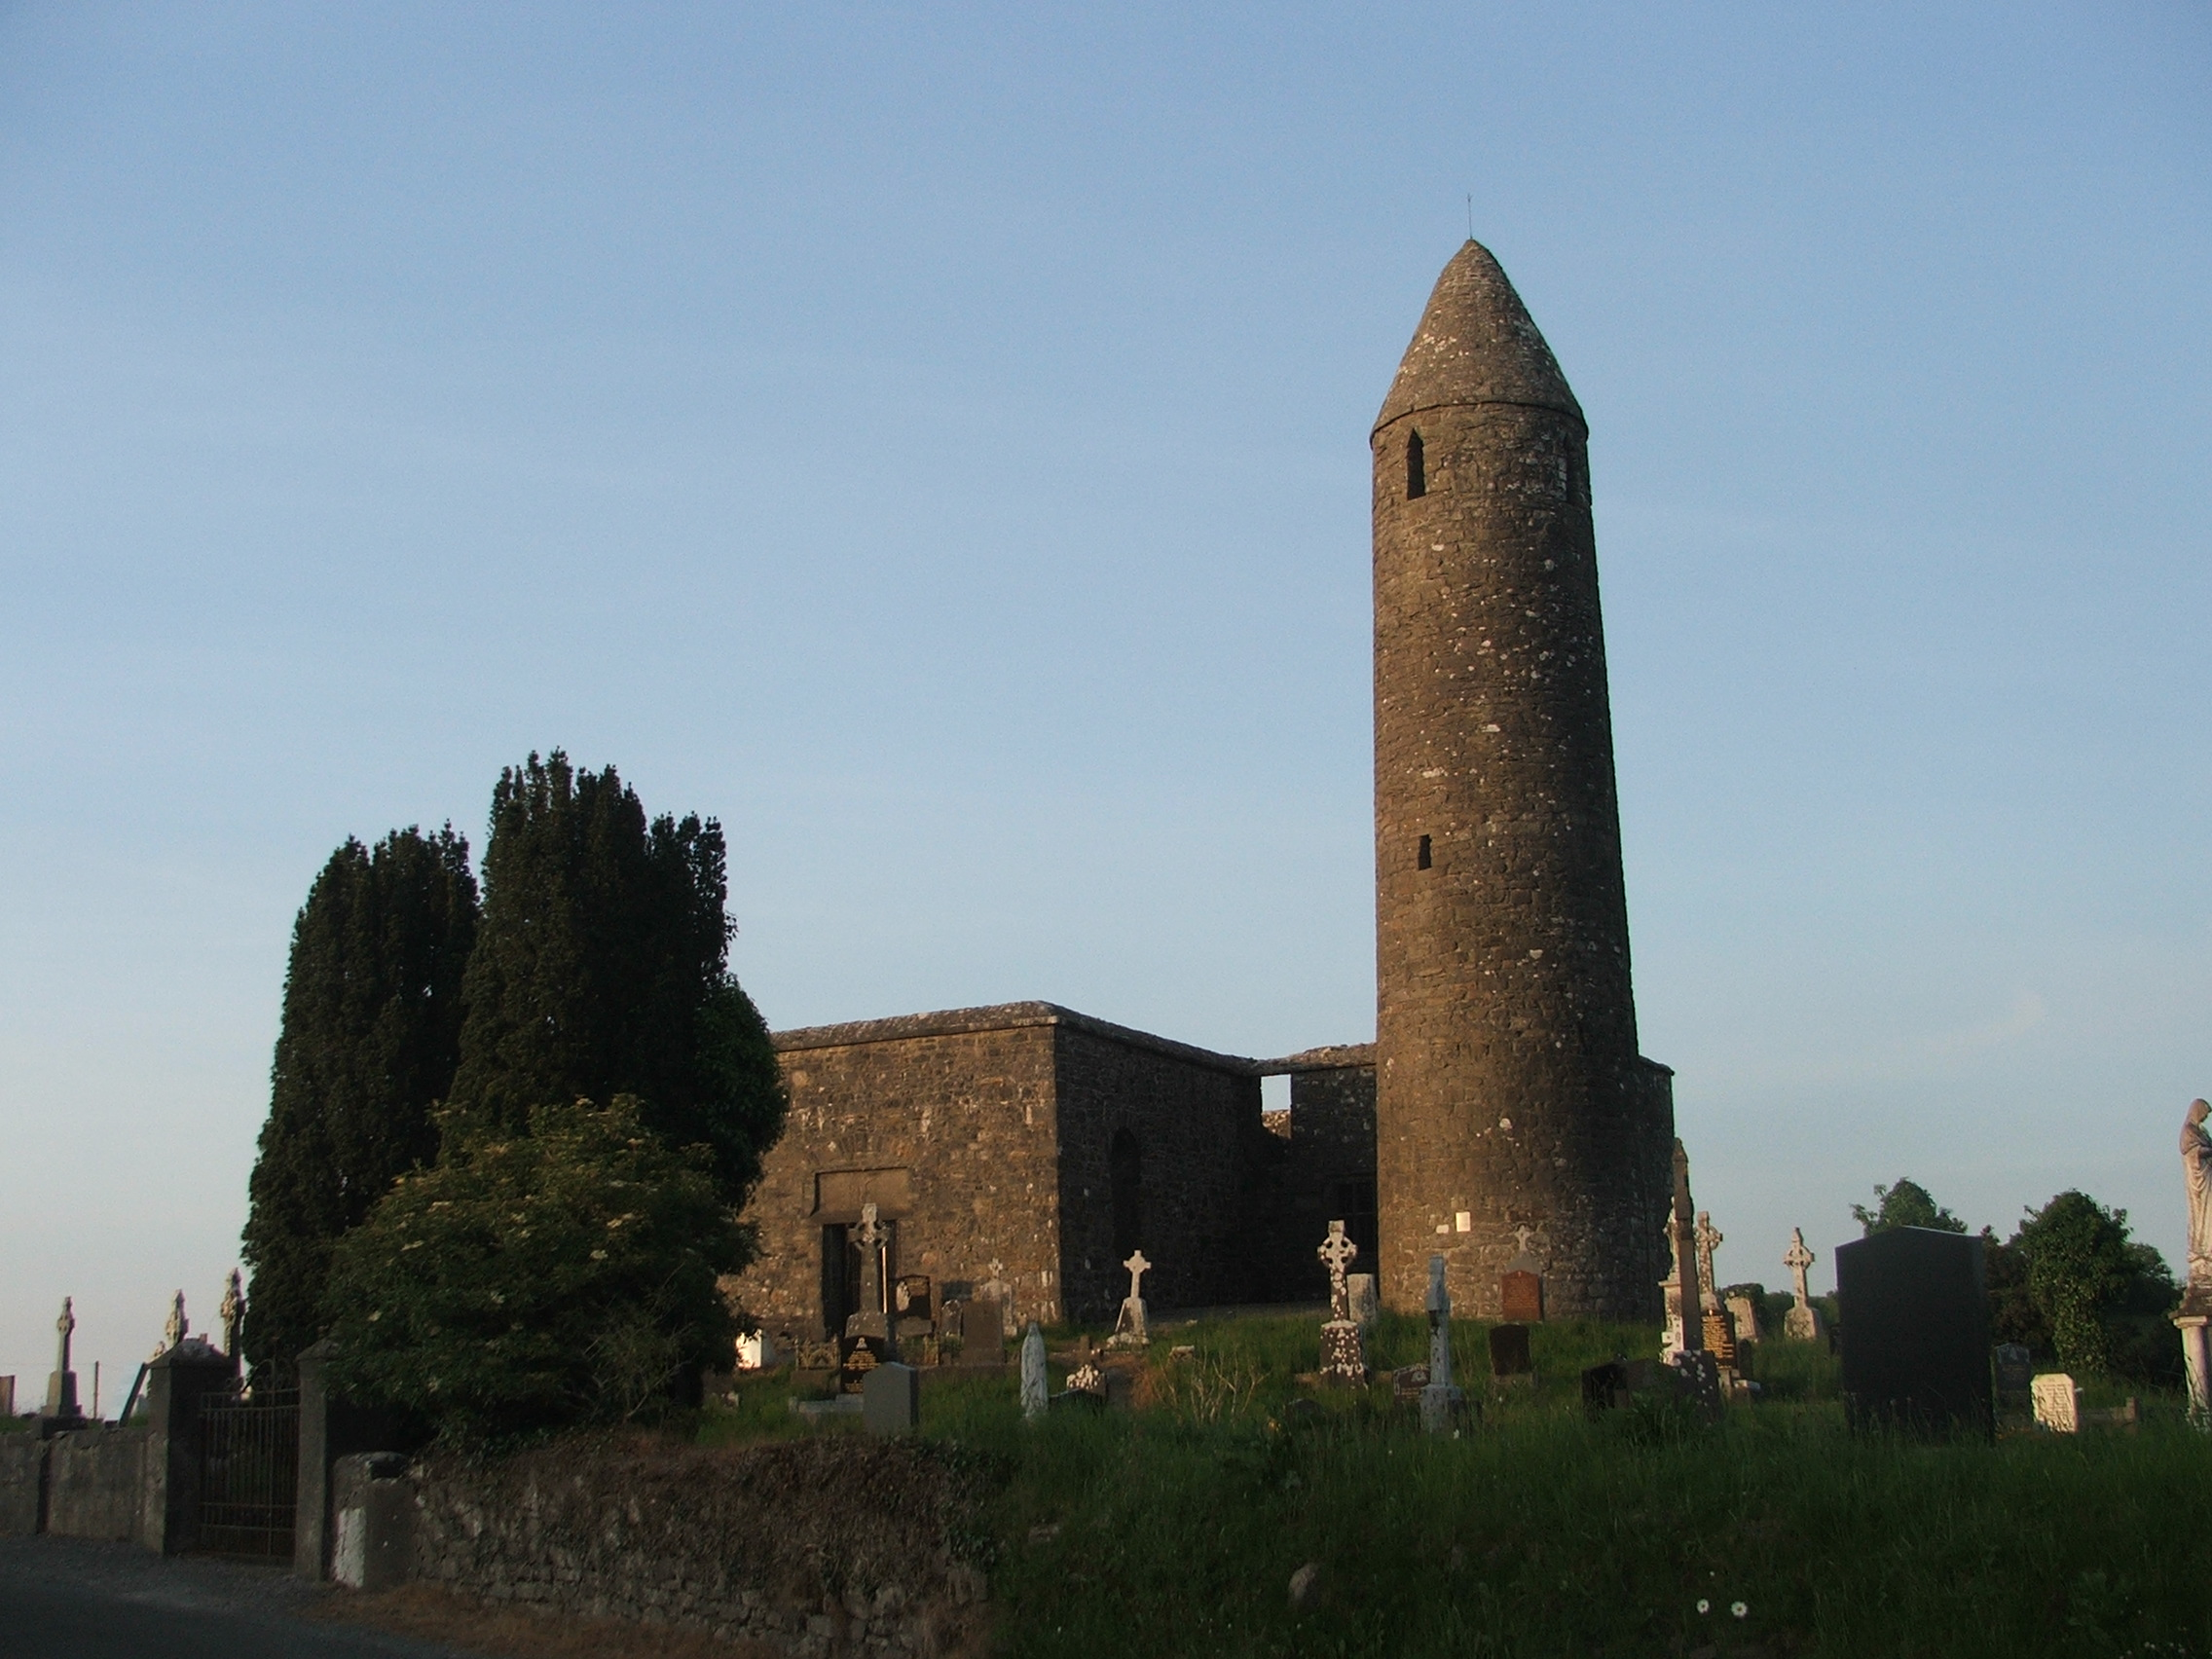 Via Wikipedia: The round tower at Turlough